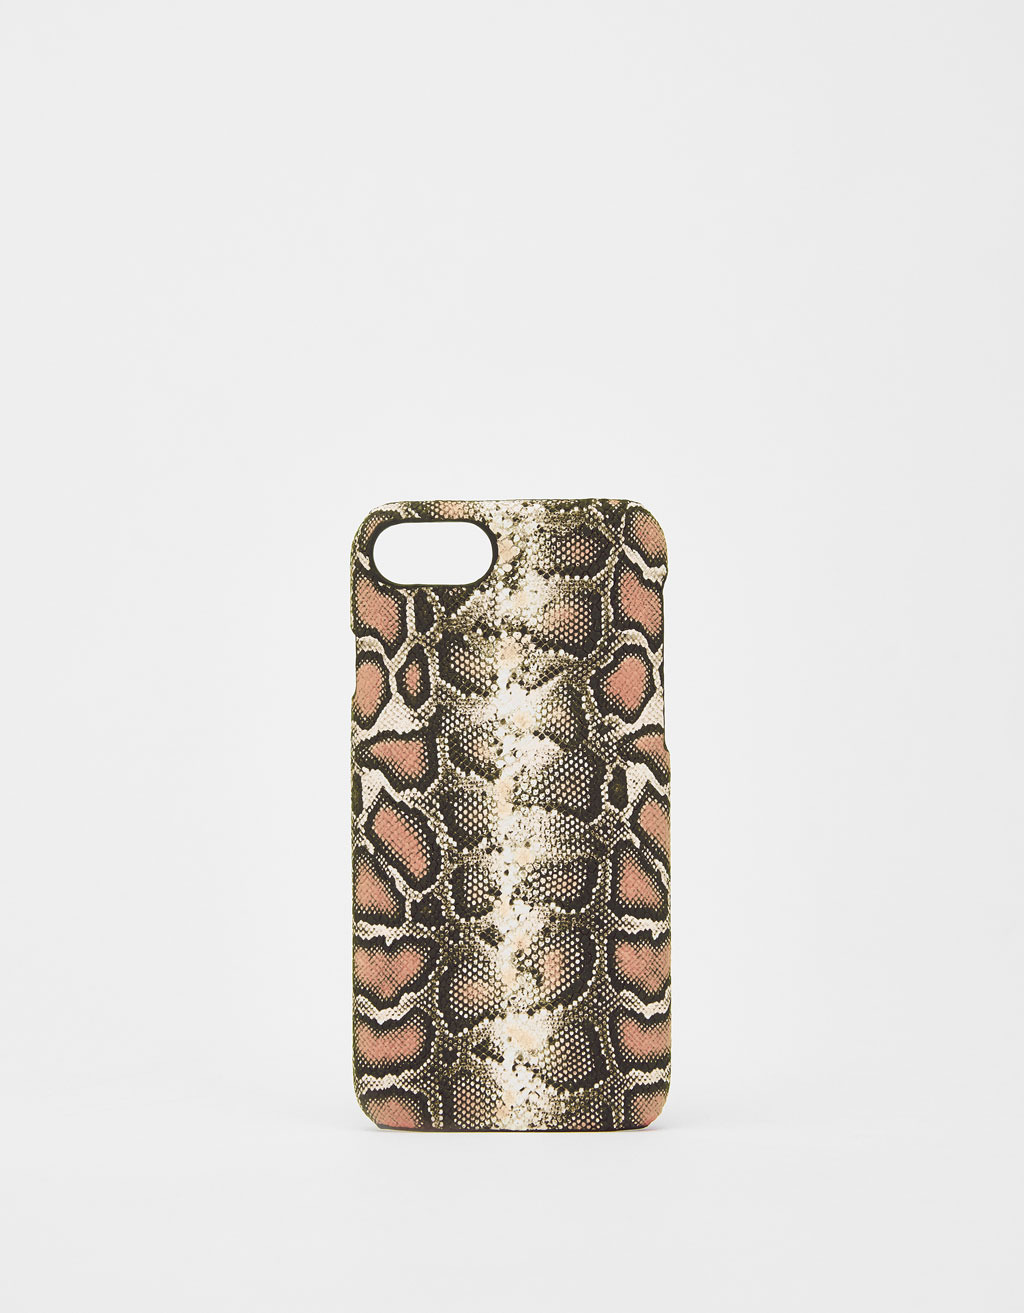 Carcasa de serpe iPhone 6 /6s/7/8